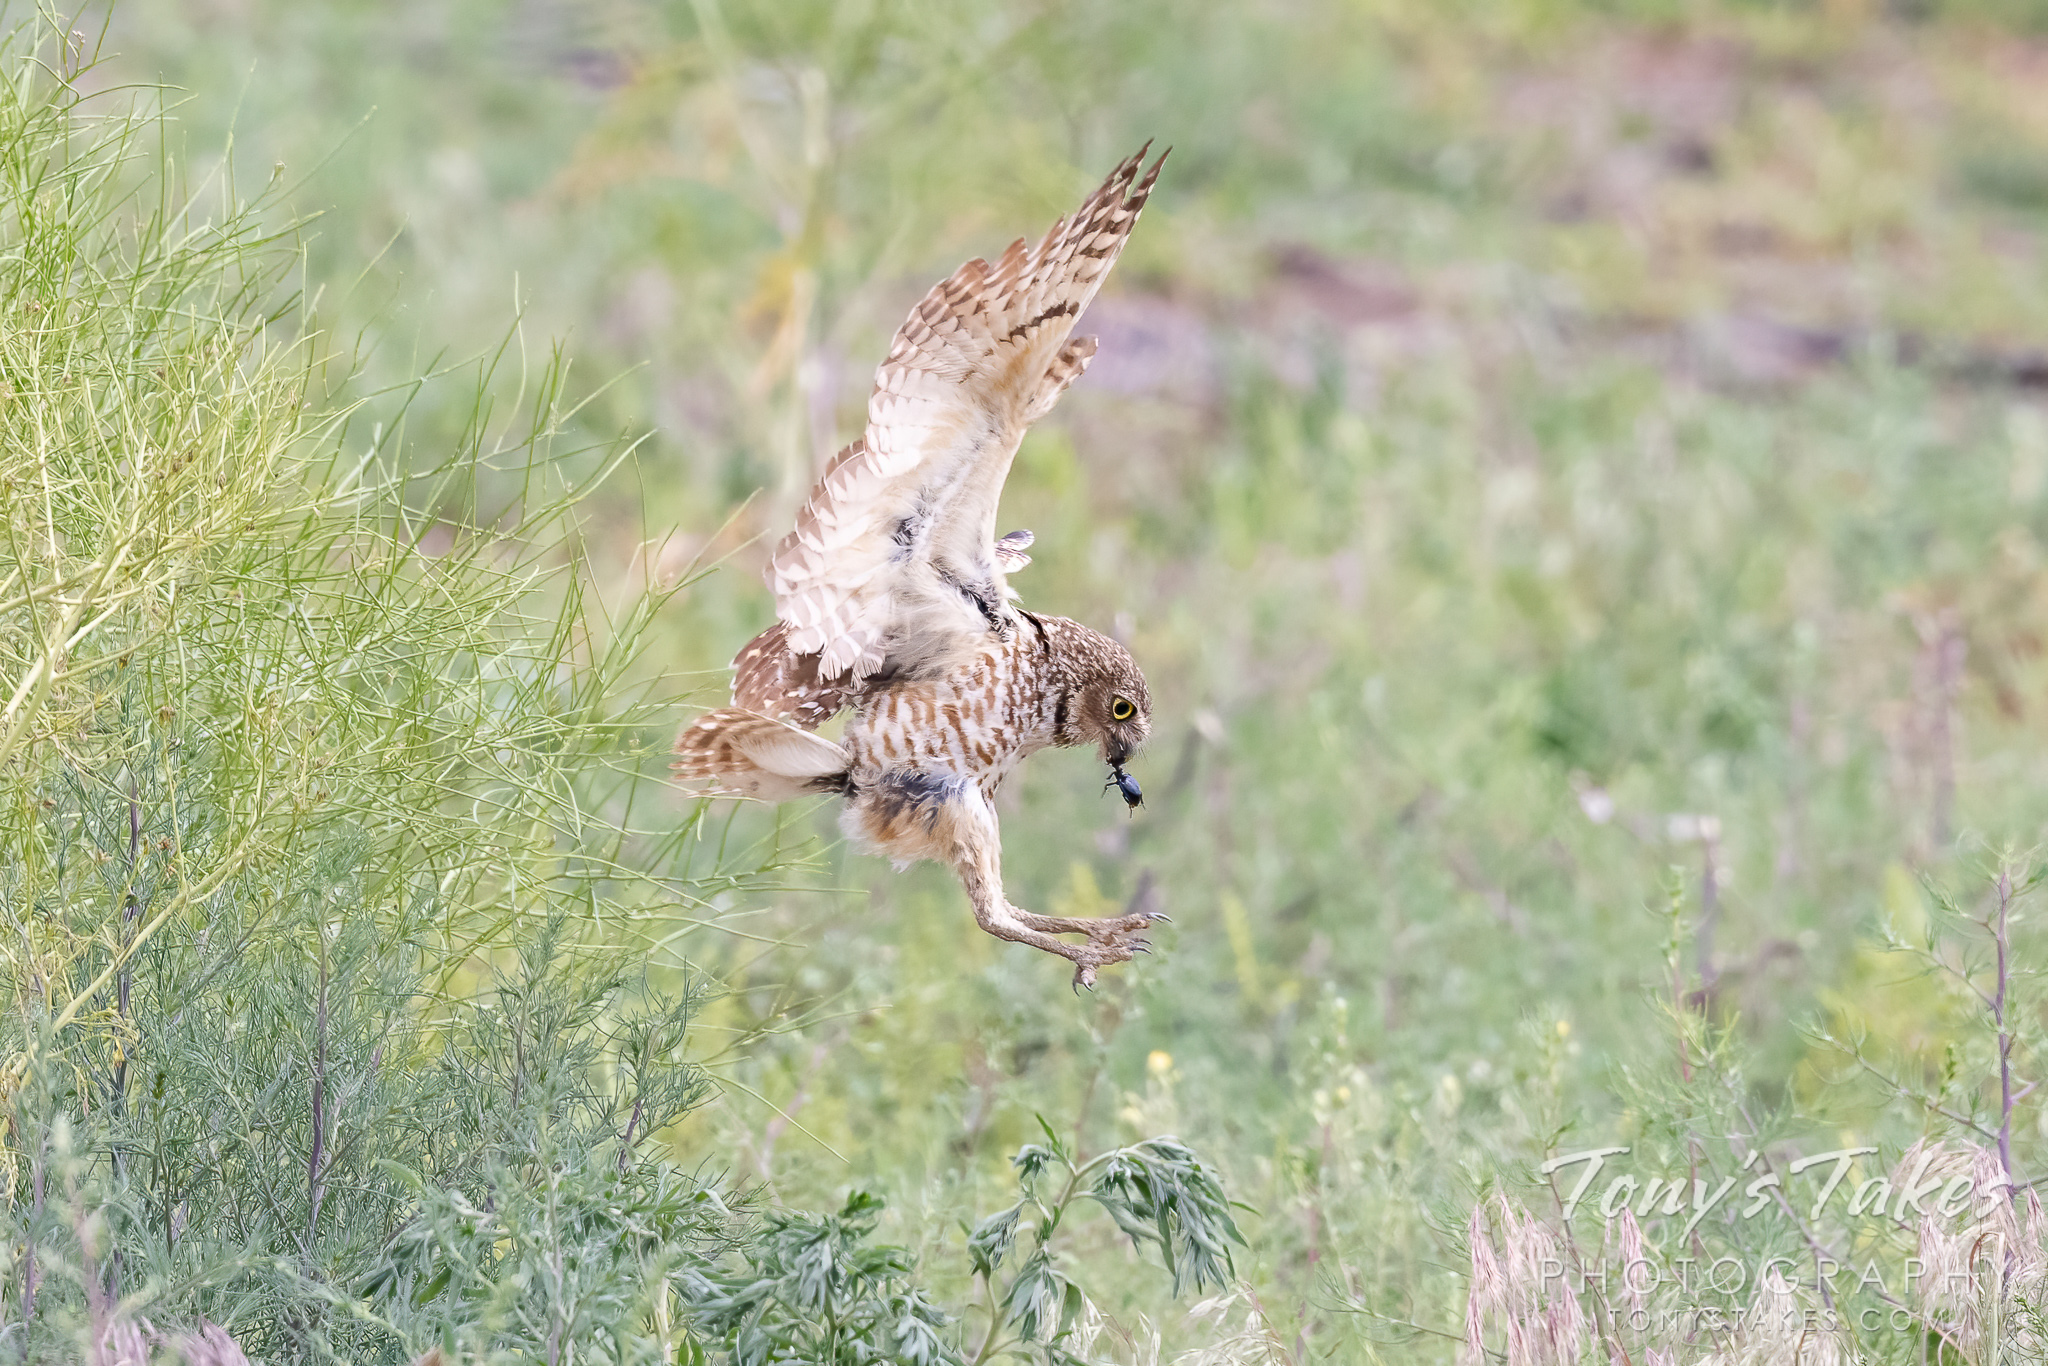 Burrowing owl brings home breakfast for the kiddos